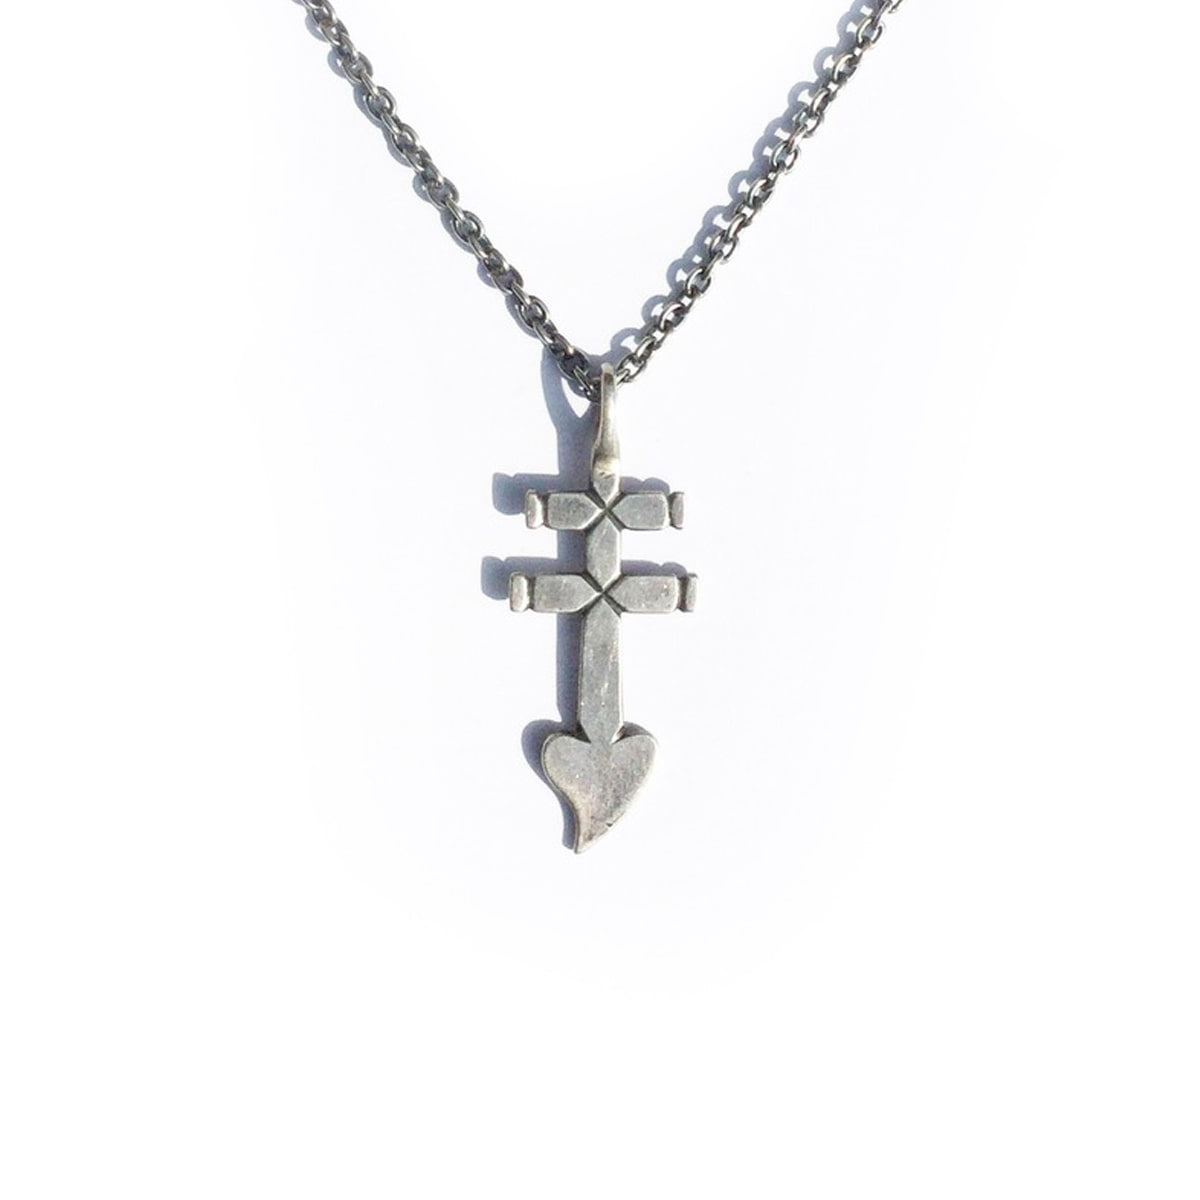 [NORTH WORKS] DOUBLE BARRED CROSS NECKLACE 'N-306'